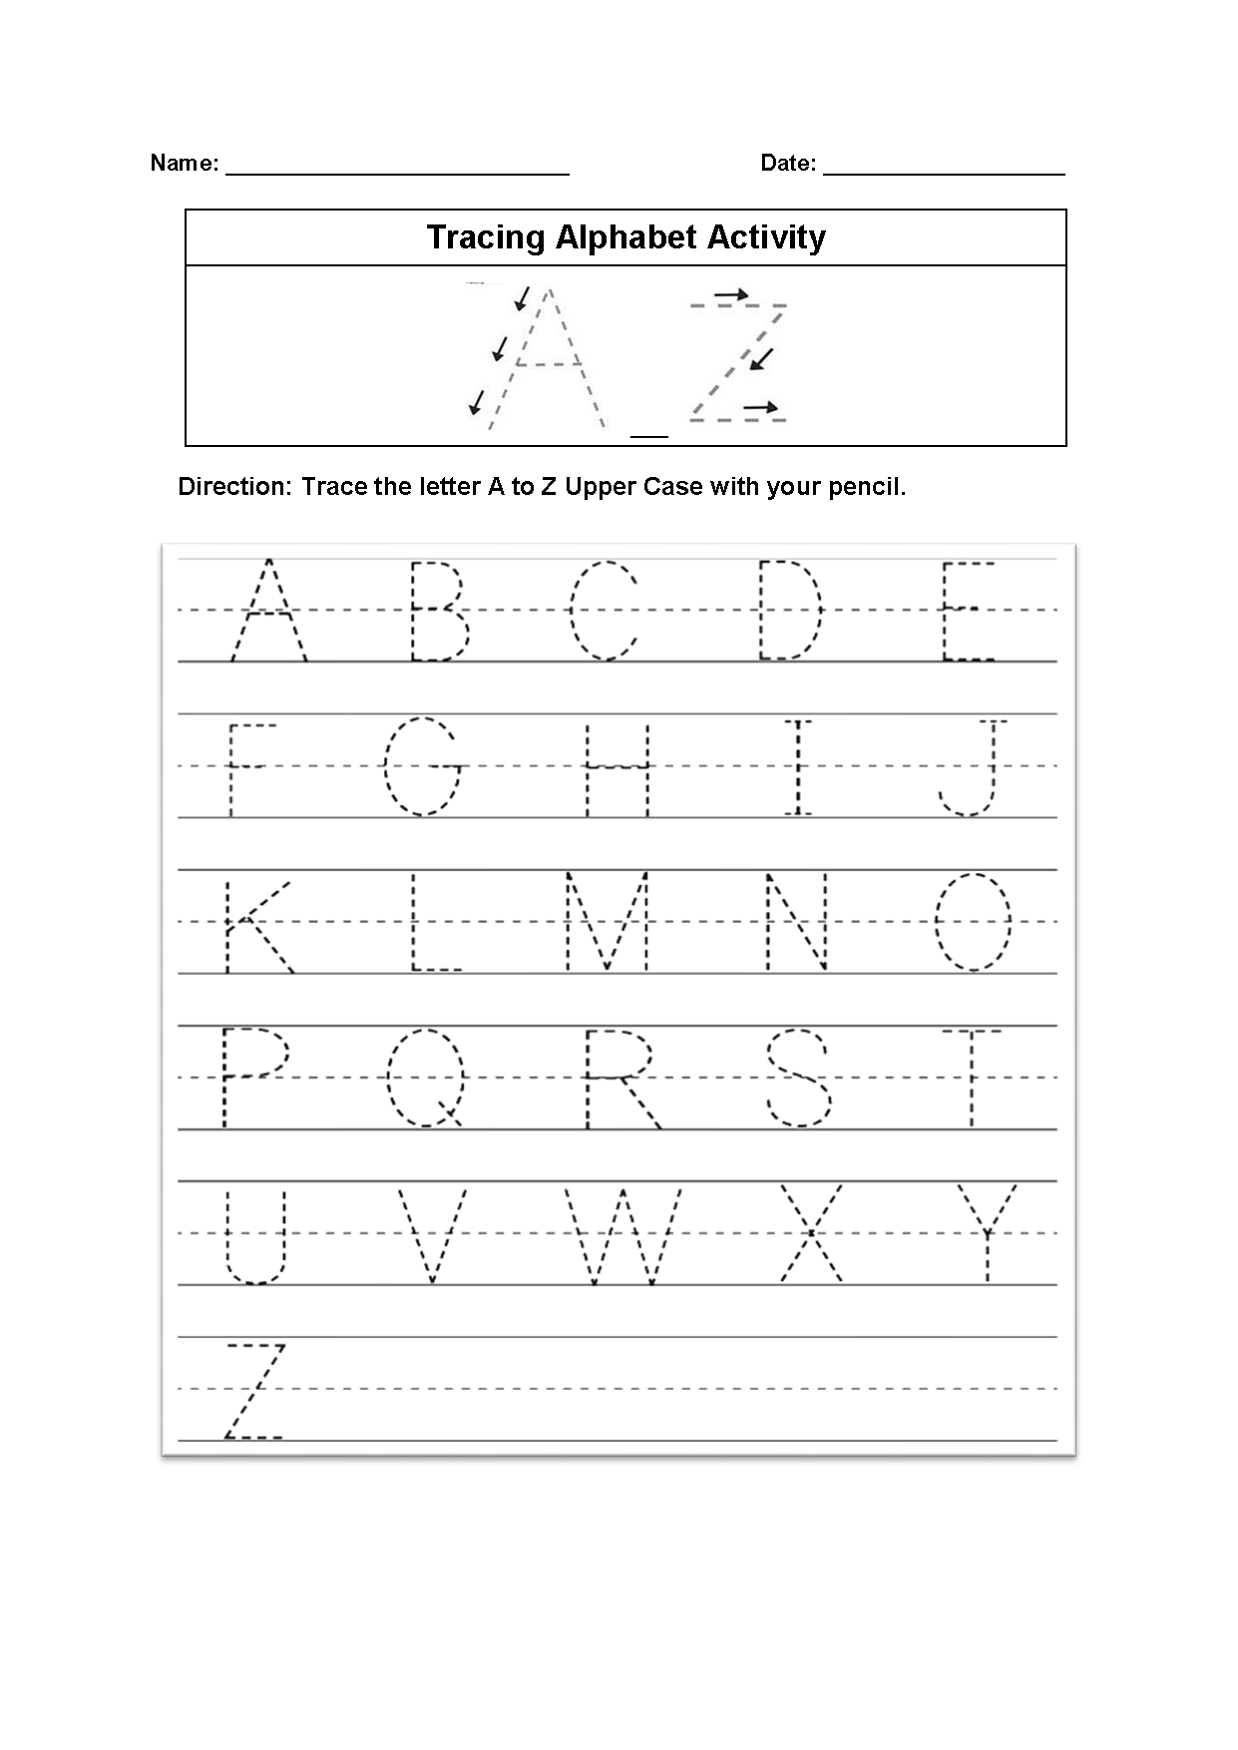 Tracing Alphabet Worksheets | Kids Learning Activity